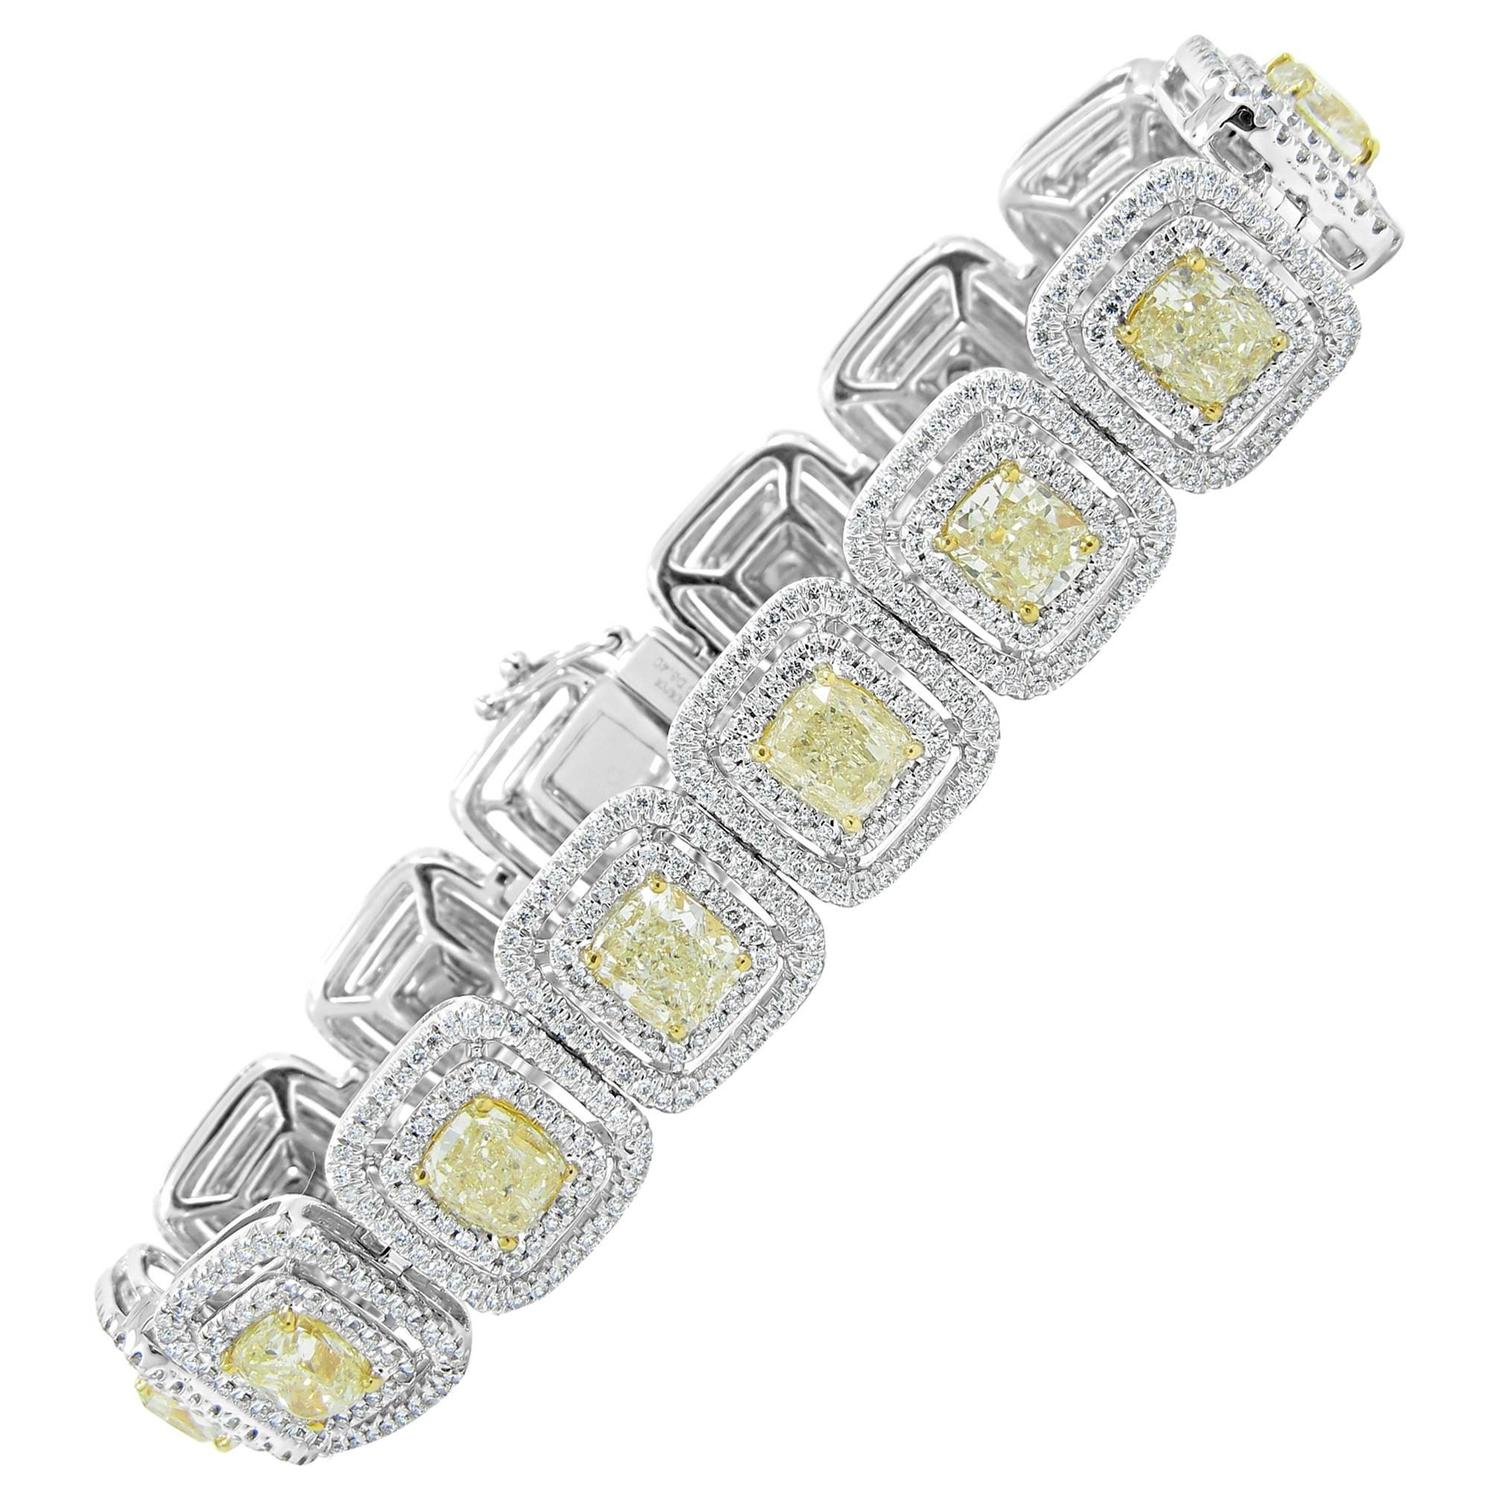 unique wrist speaks the your natural news diamond tennis taste and bracelet sparkle quality on silver mg of